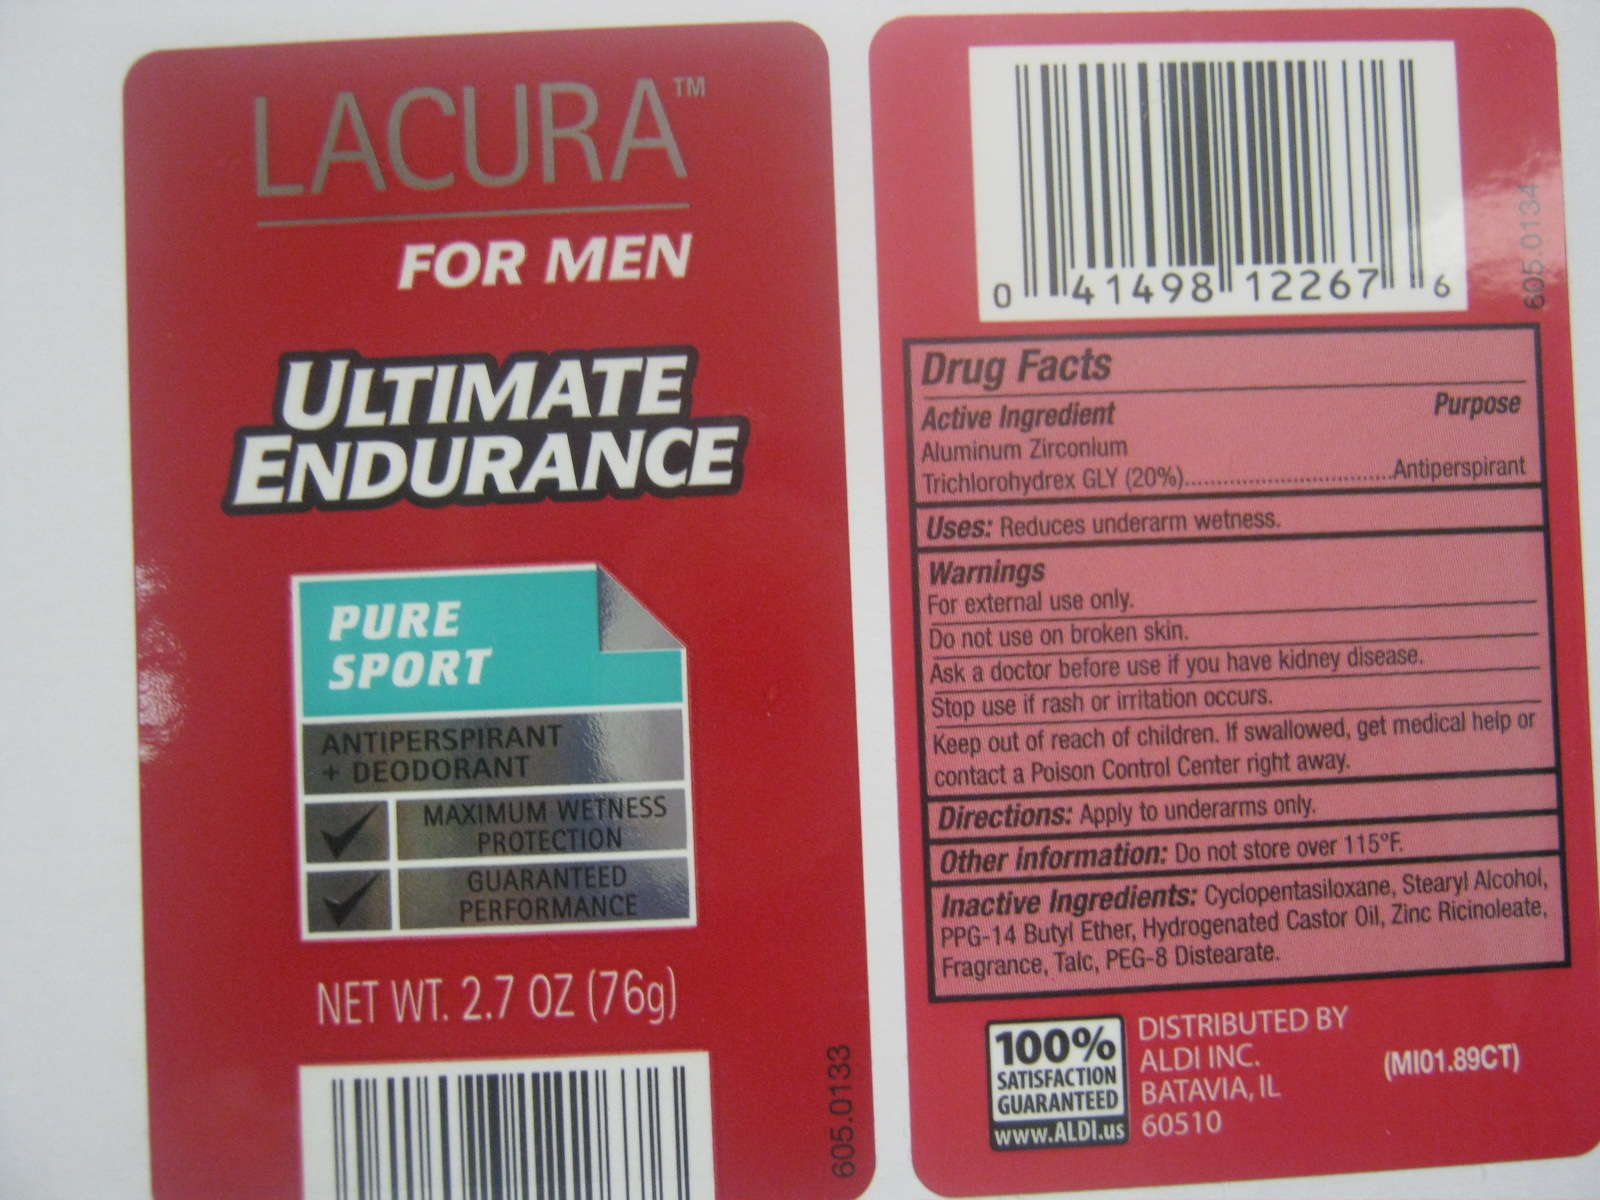 Lacura Ultimate Endurance Pure Sport Anti-perspirant Deodorant (Aluminum Zirconium Trichlorohydrex Gly) Stick [Vvf Kansas Services Llc]